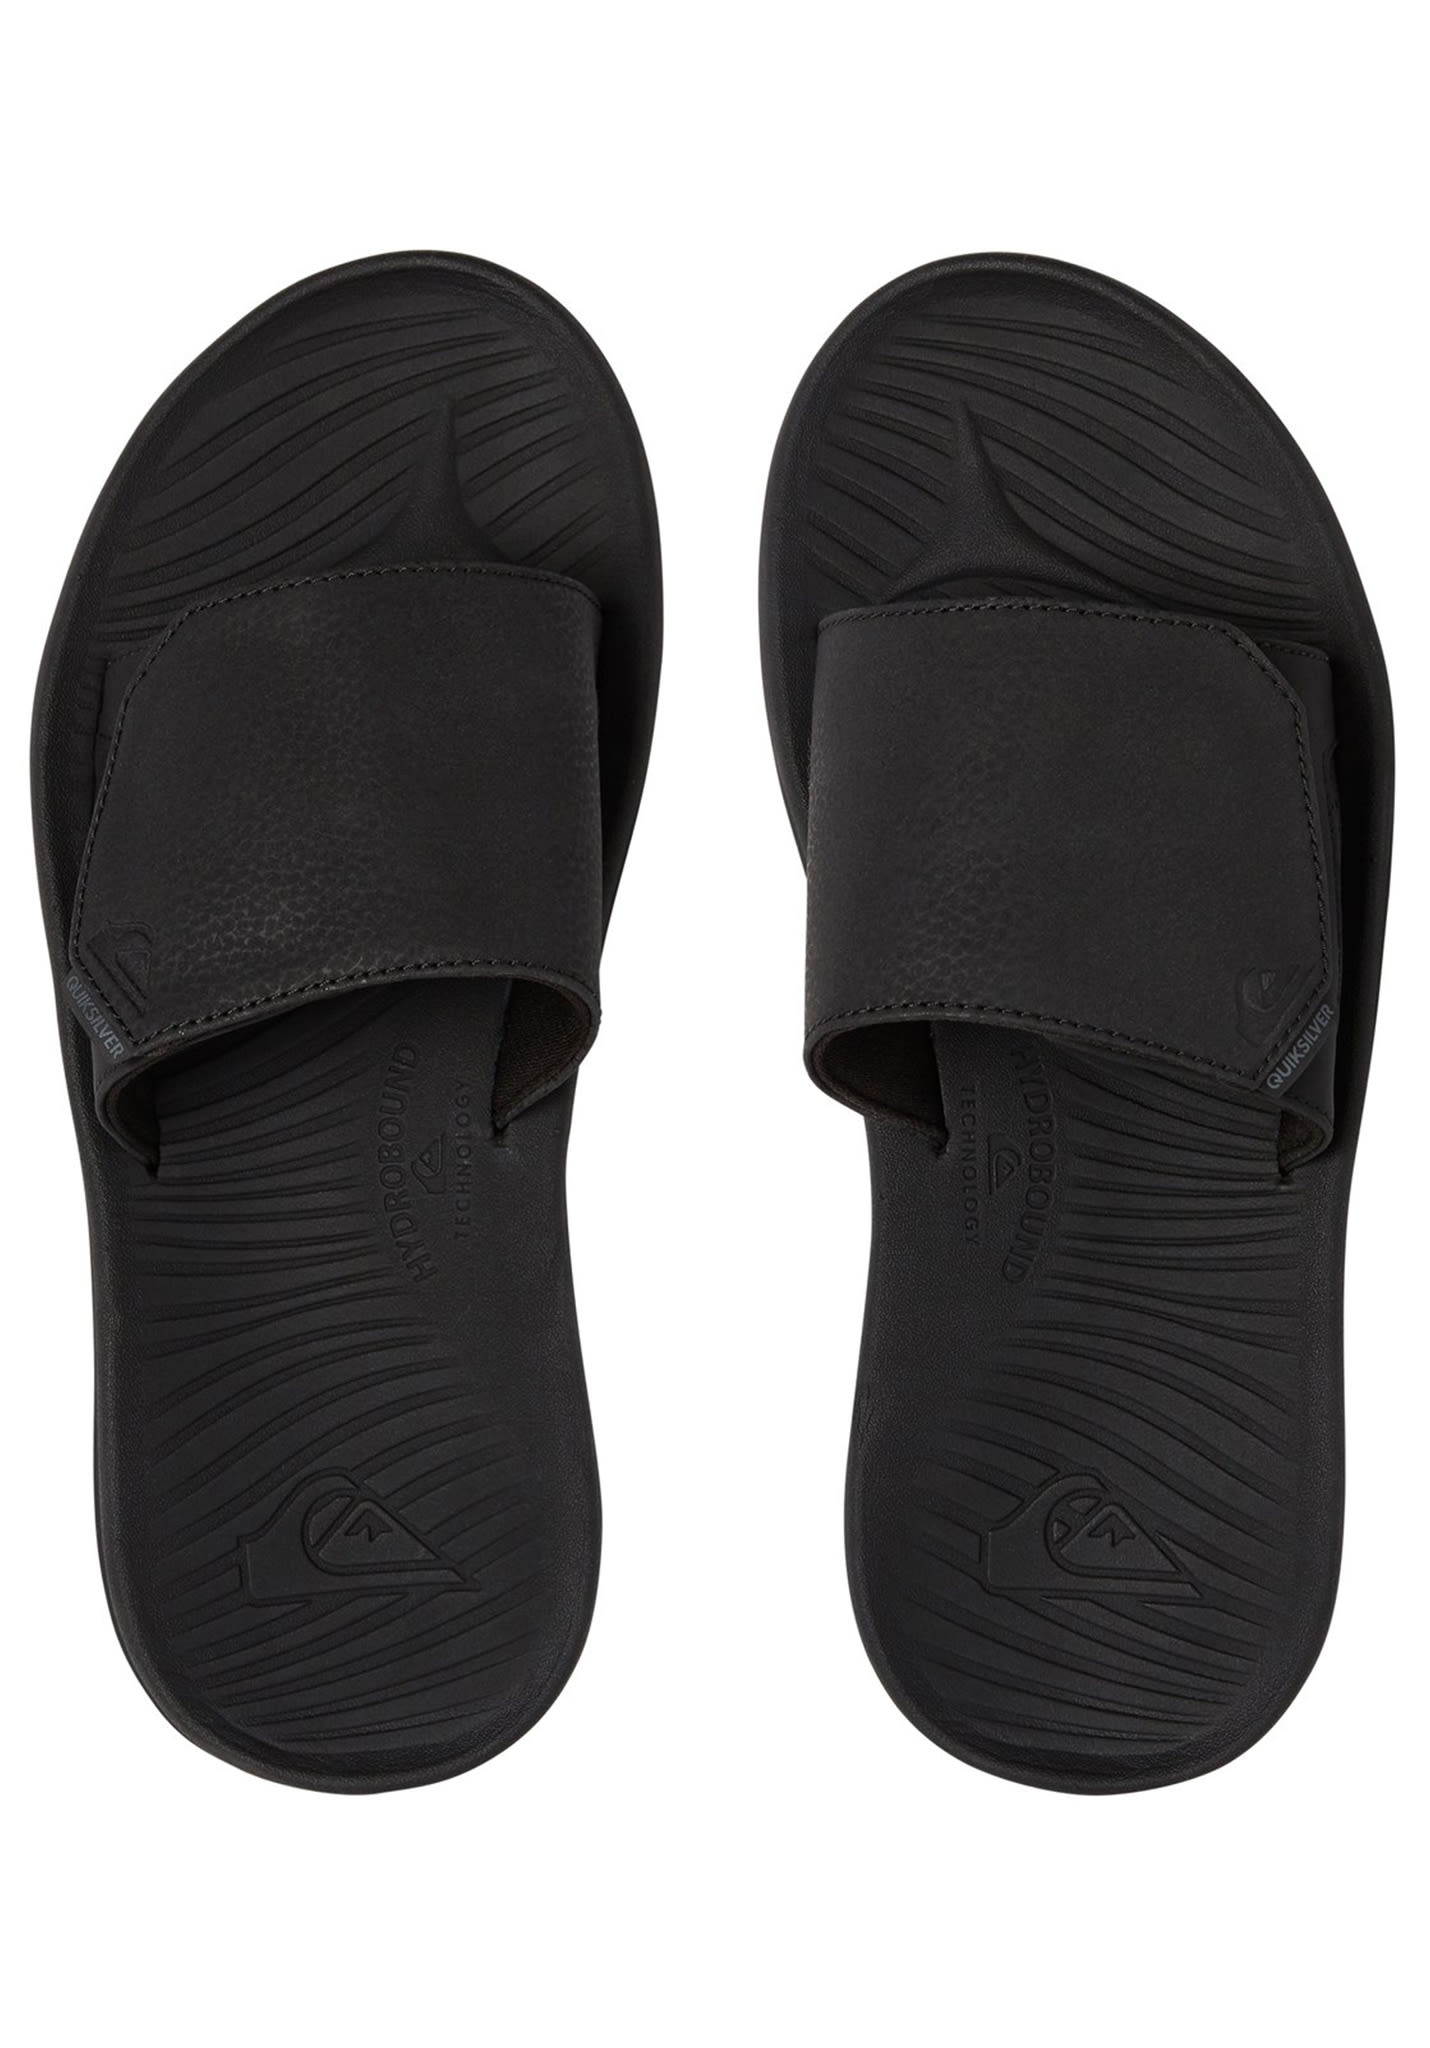 2a948d3ff57b8a Quiksilver Travel Oasis Slide - Sandals for Men - Black - Planet Sports